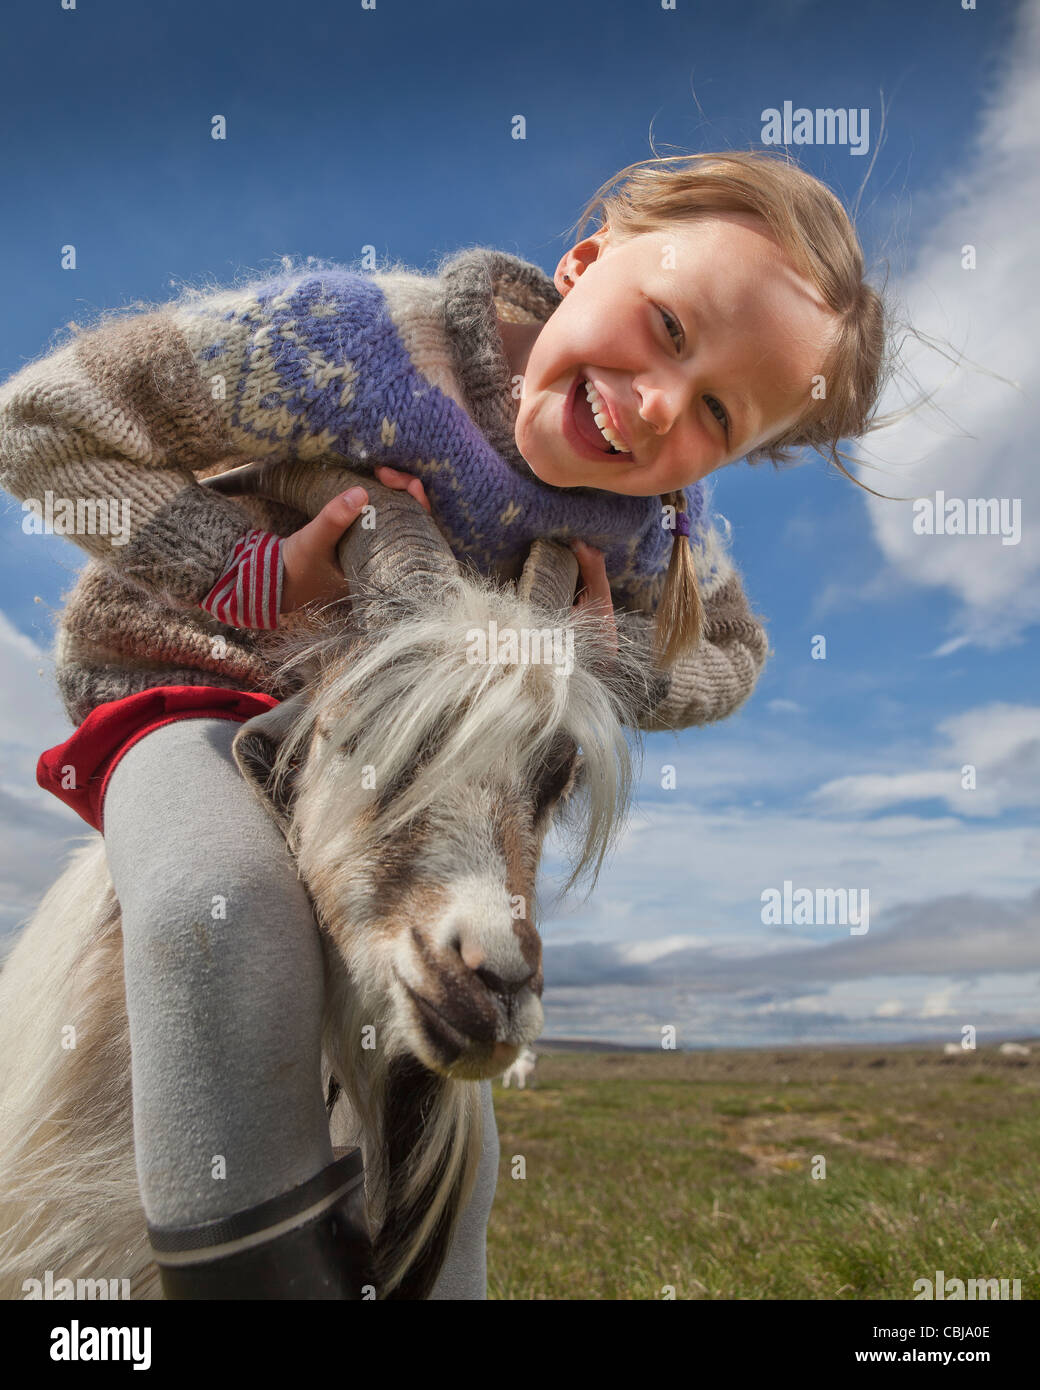 Girl with goat, Goat farm, Iceland Stock Foto